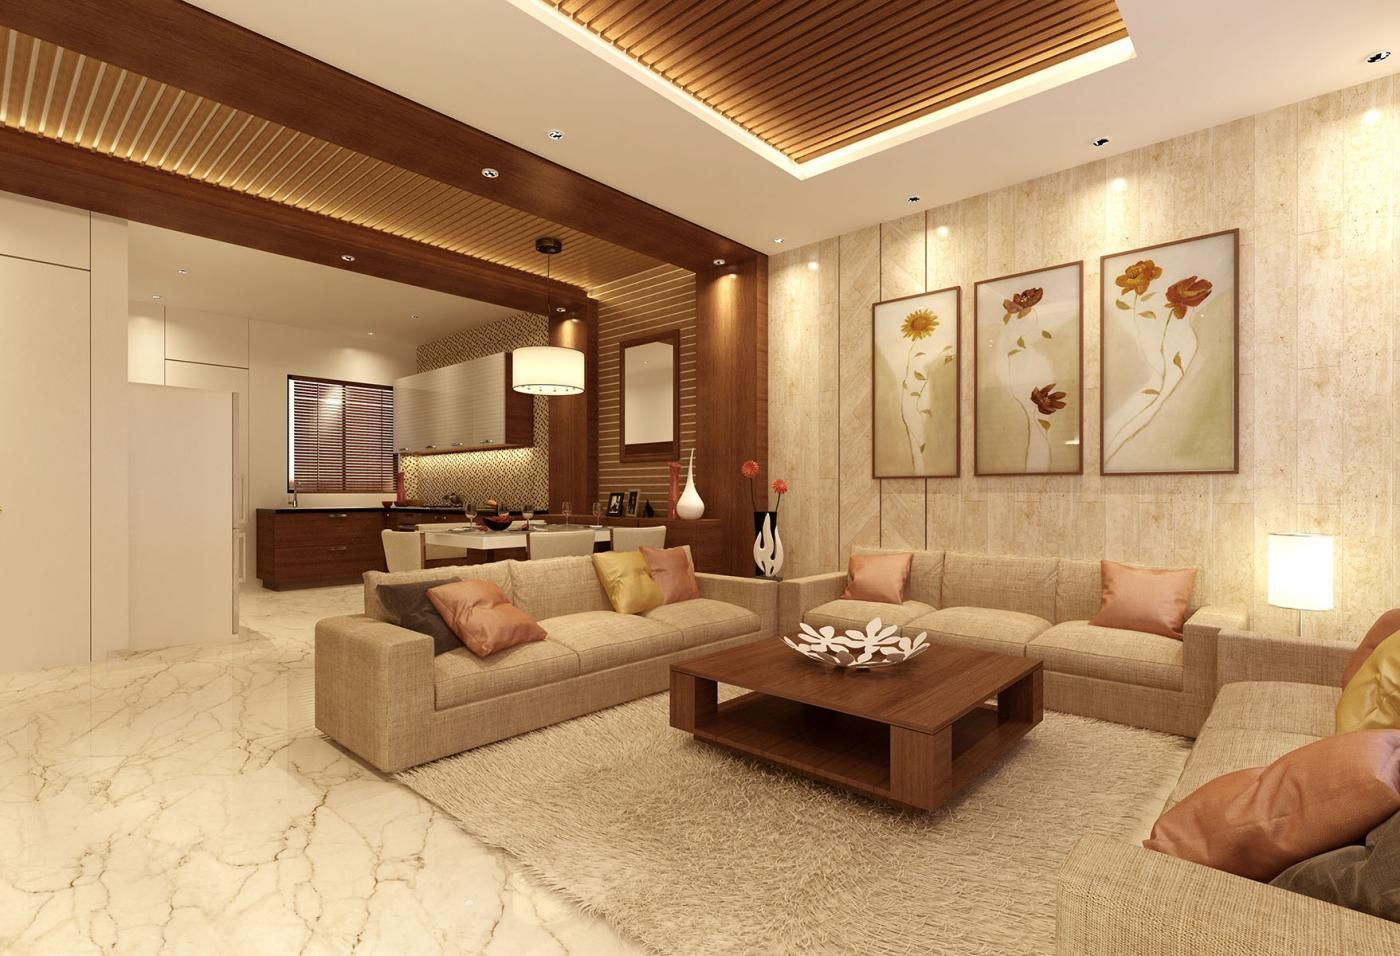 Buy 2 3 4 Bhk Luxury Flats Apartments And Penthouse Independent Floors In Sushma Joynest Mohali Pay Interior Design Photos Flat Interior Design Flat Interior